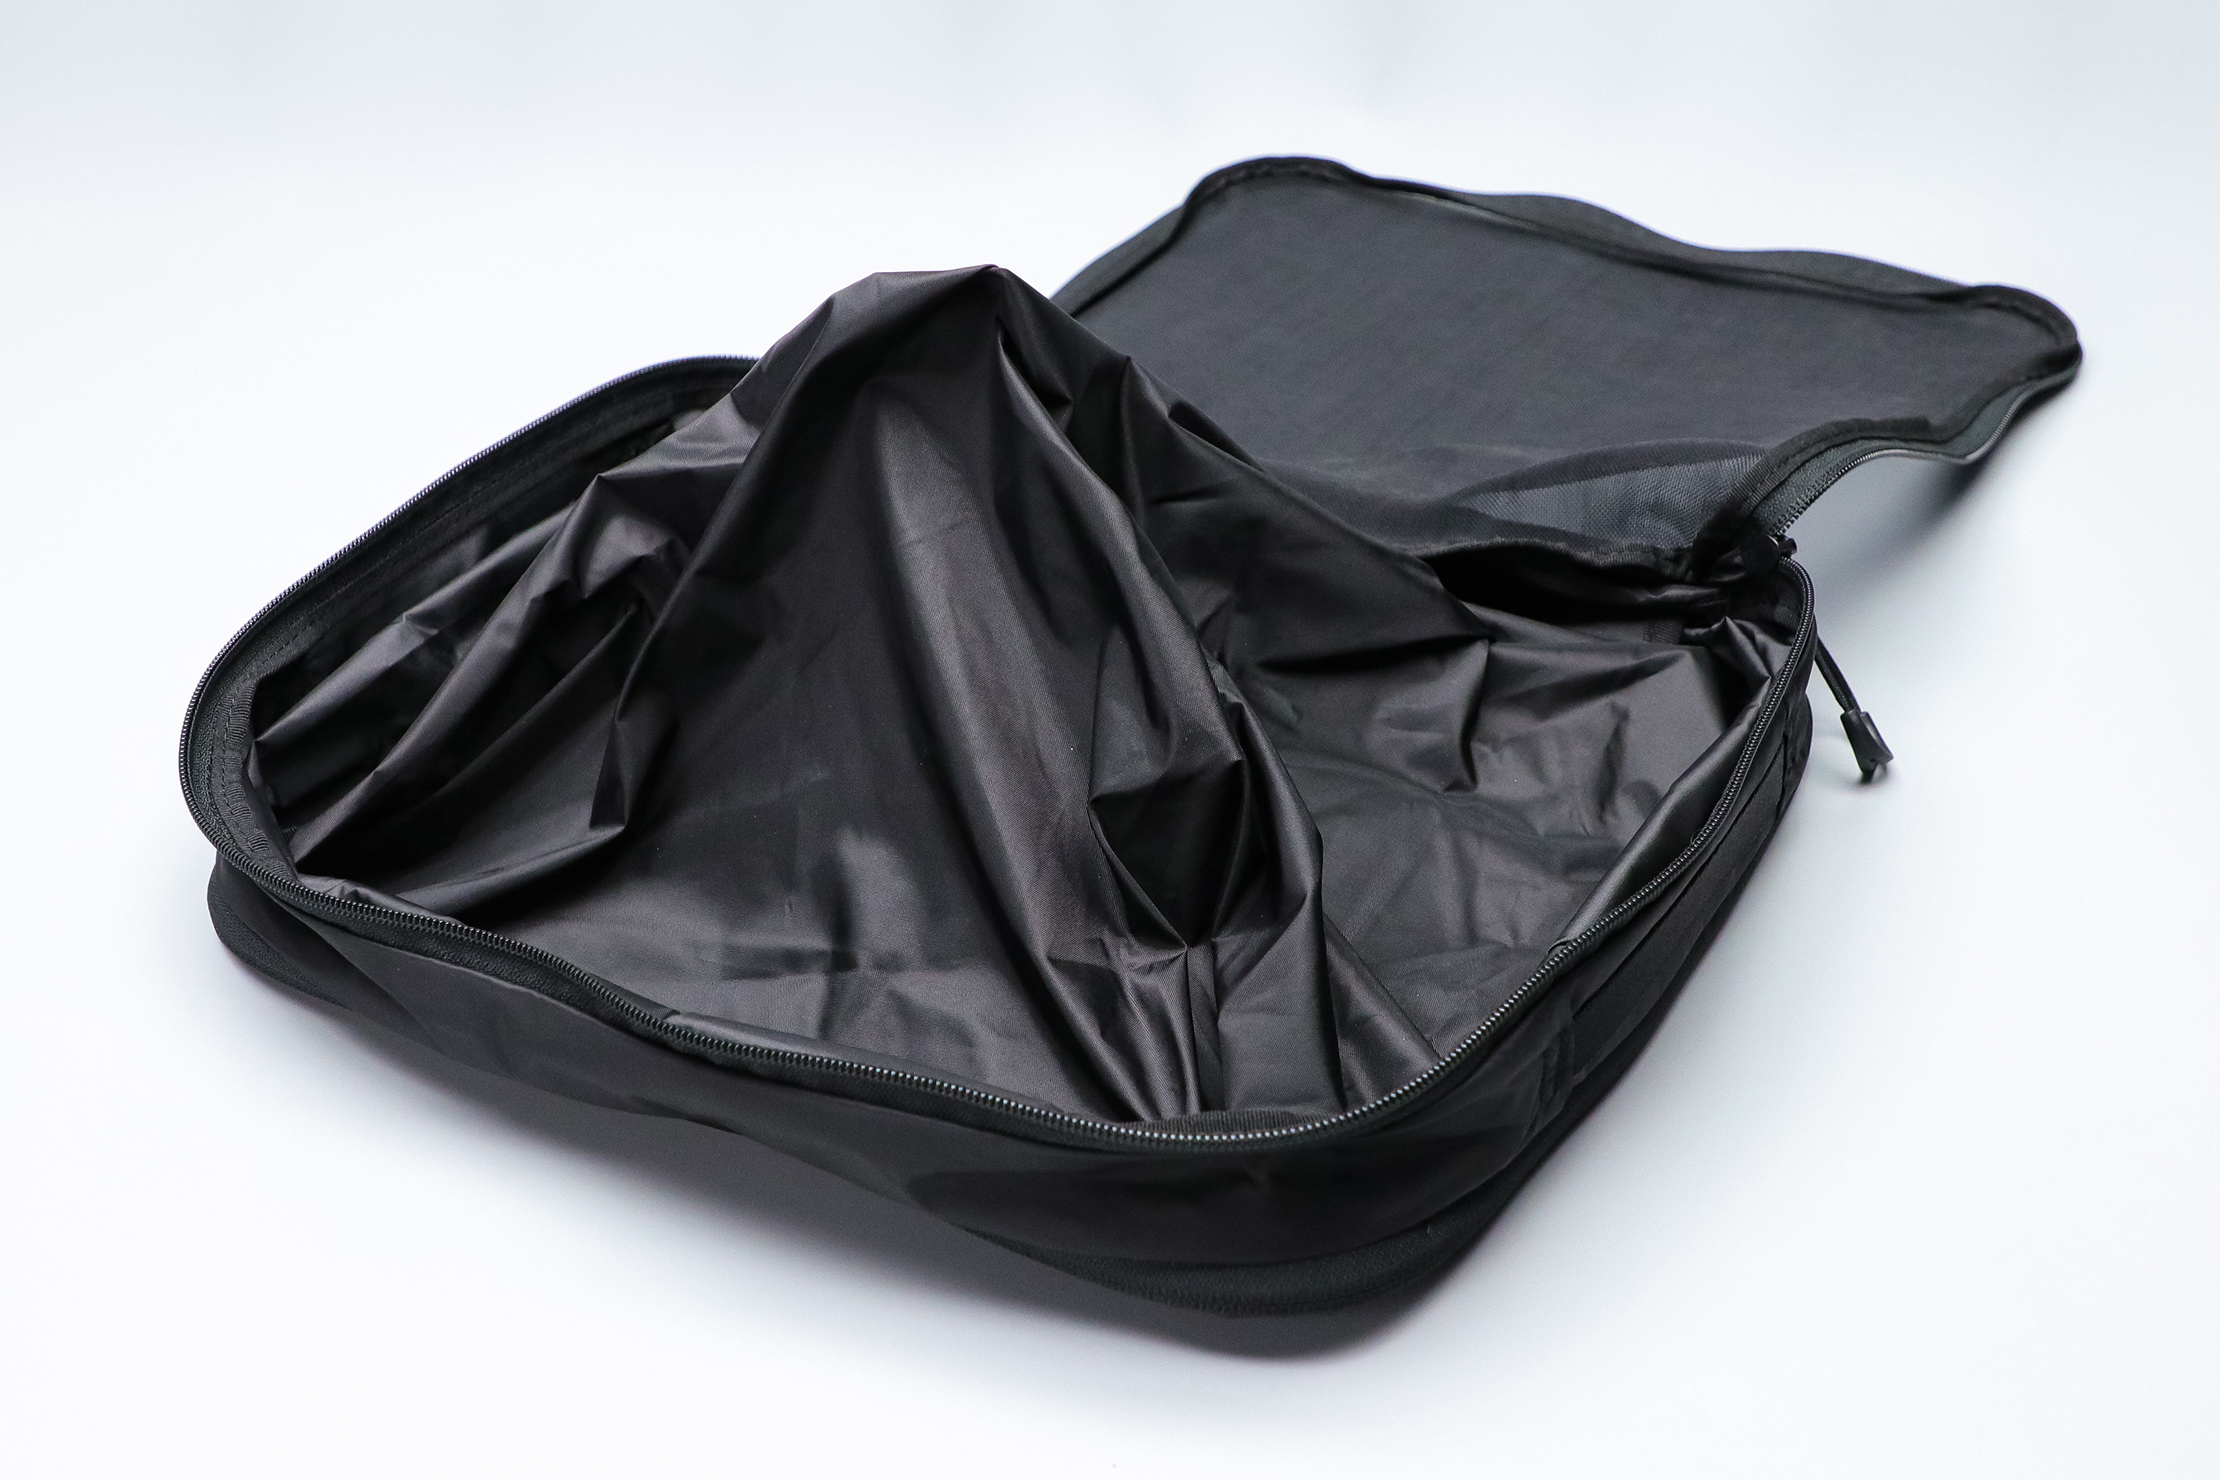 WANDRD Packing Cubes Excess Material